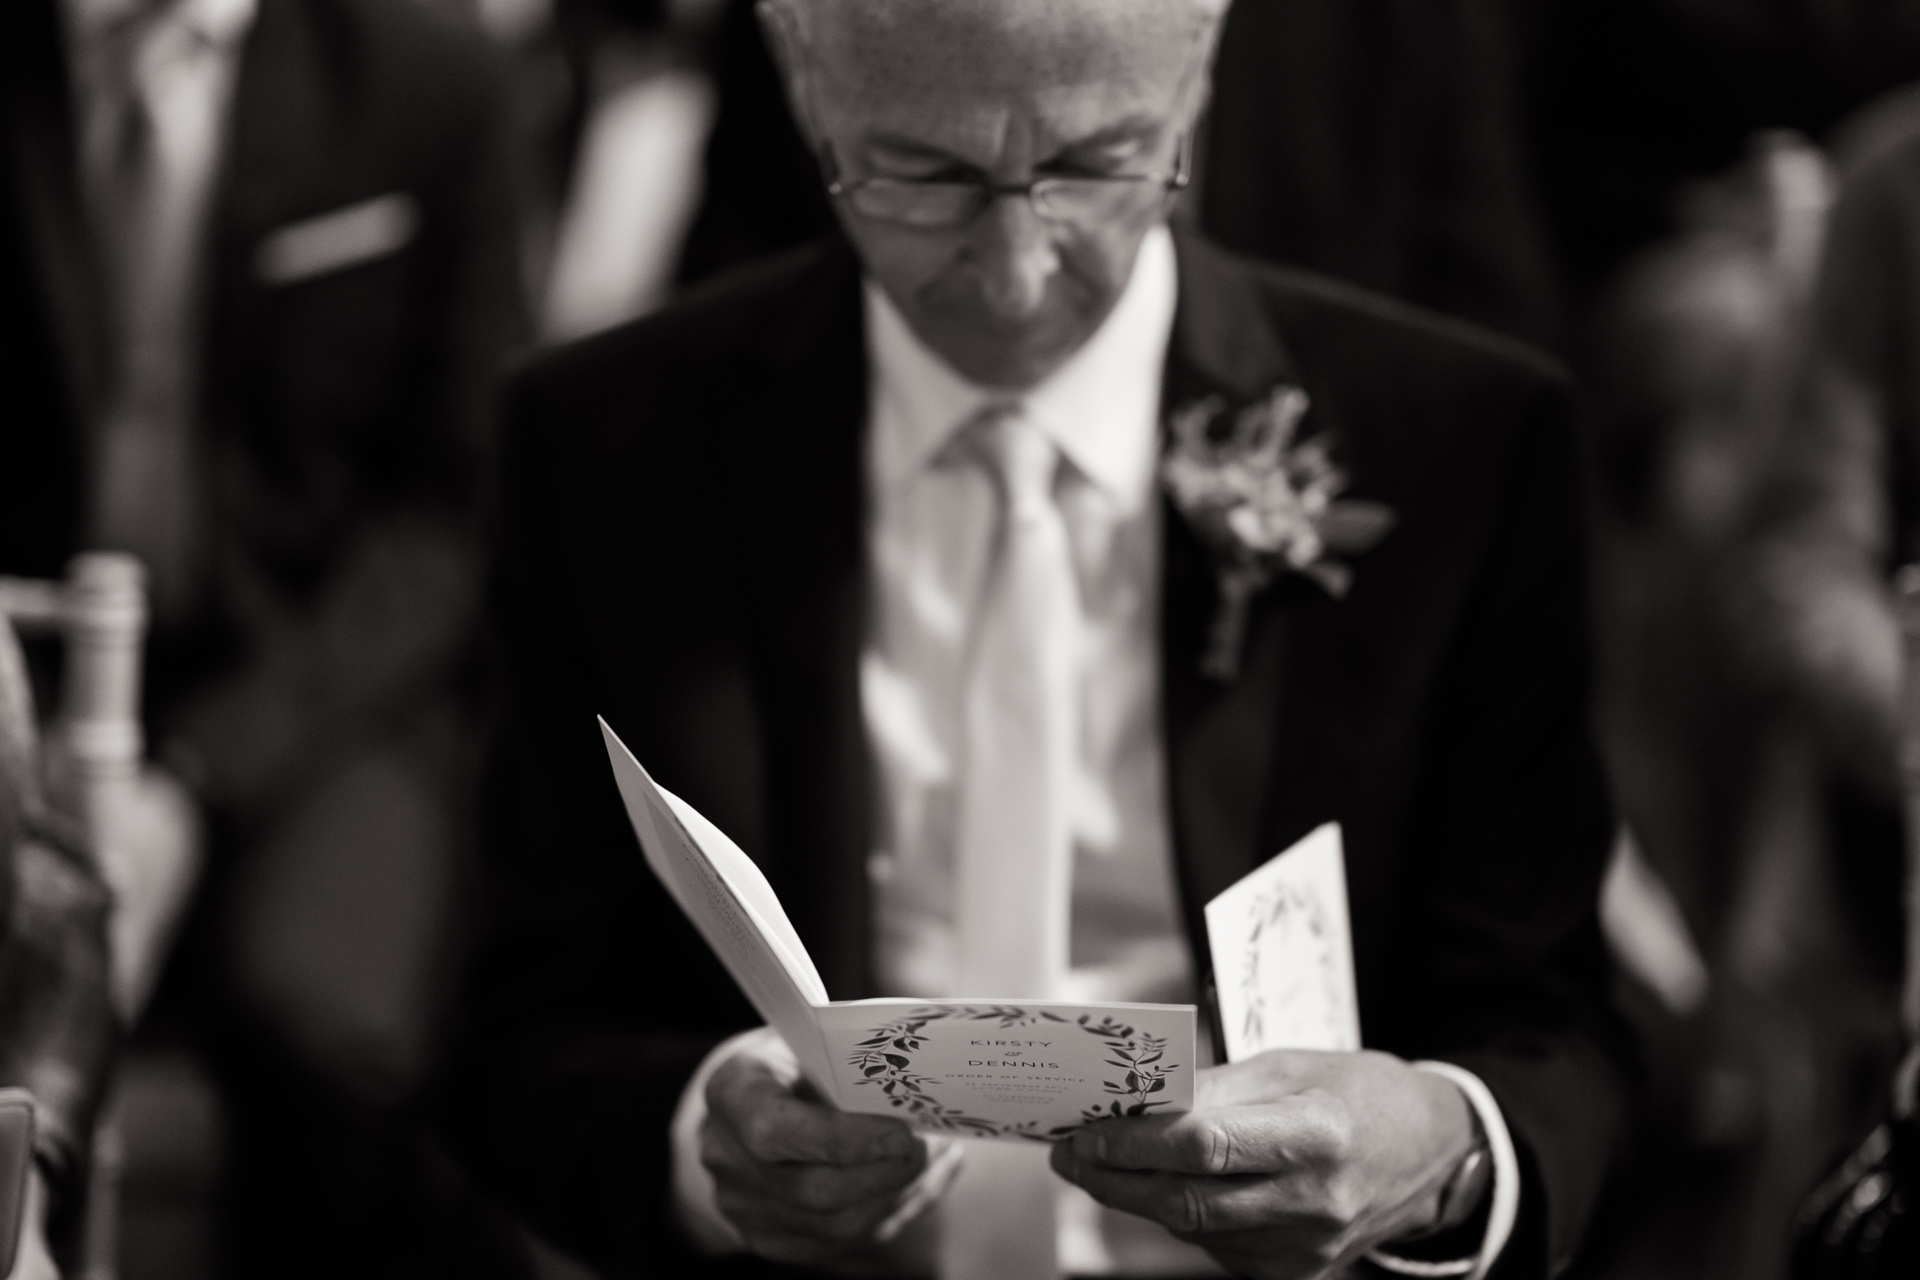 st-stephens-hampstead-wedding-photographer-018